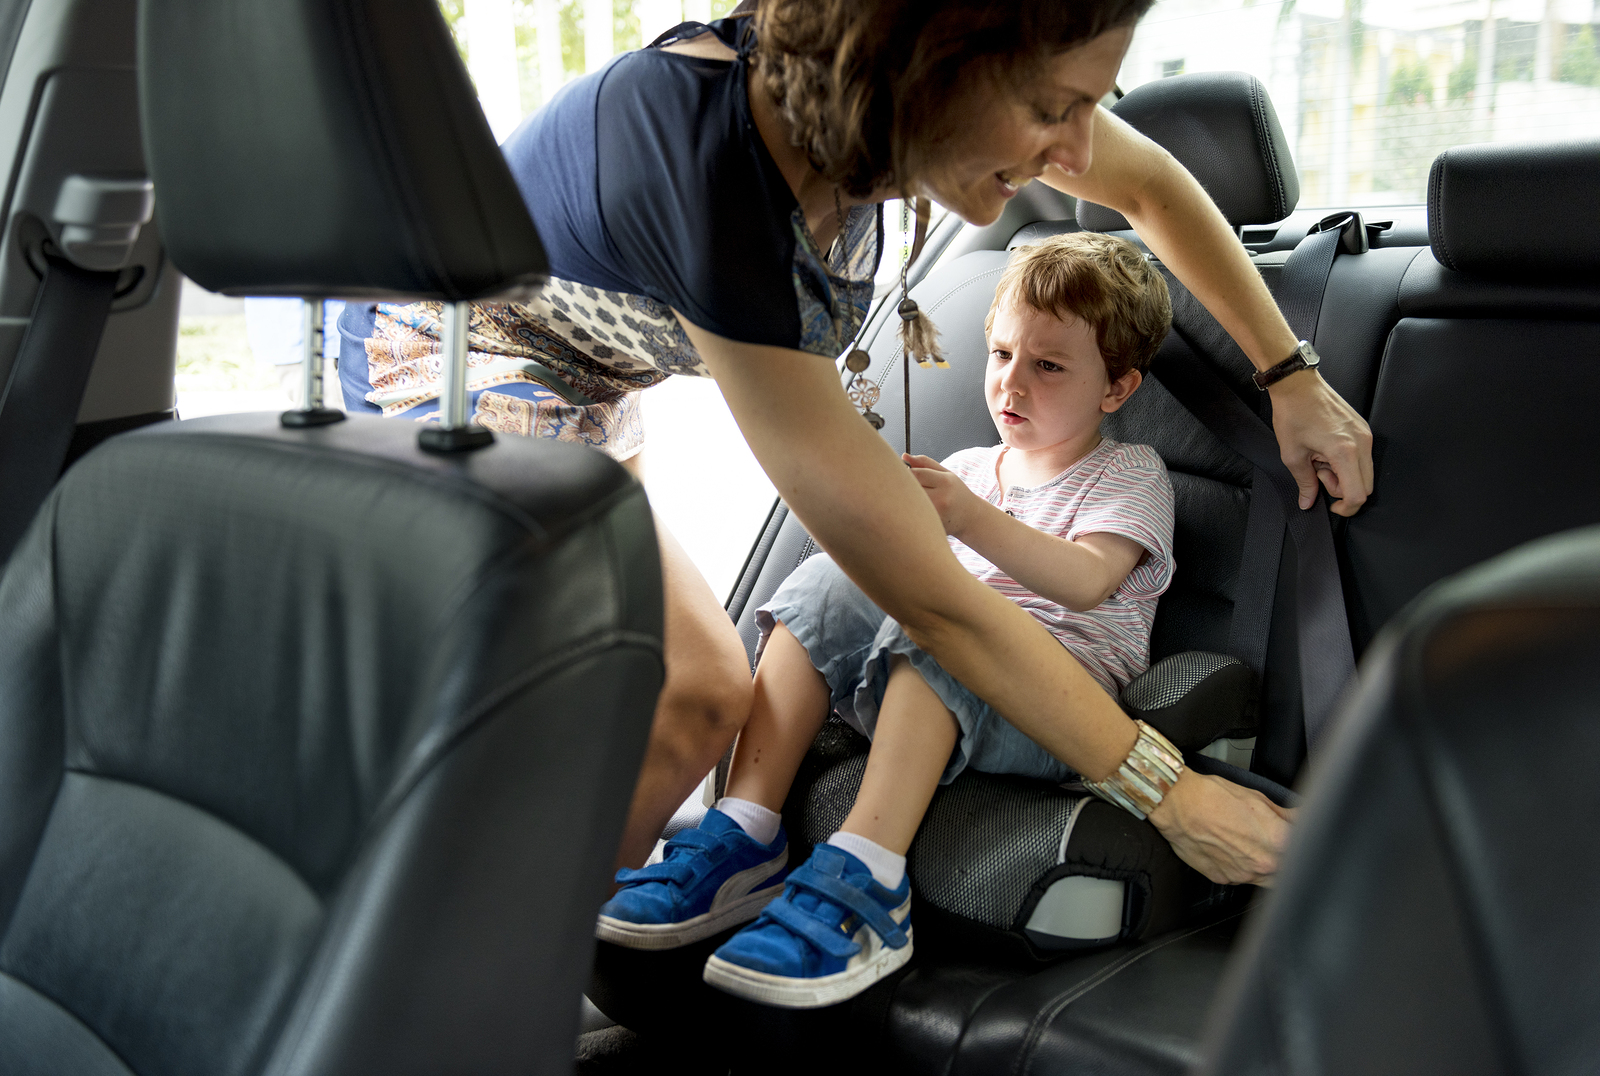 A new study reveals some scary stats about child car safety.